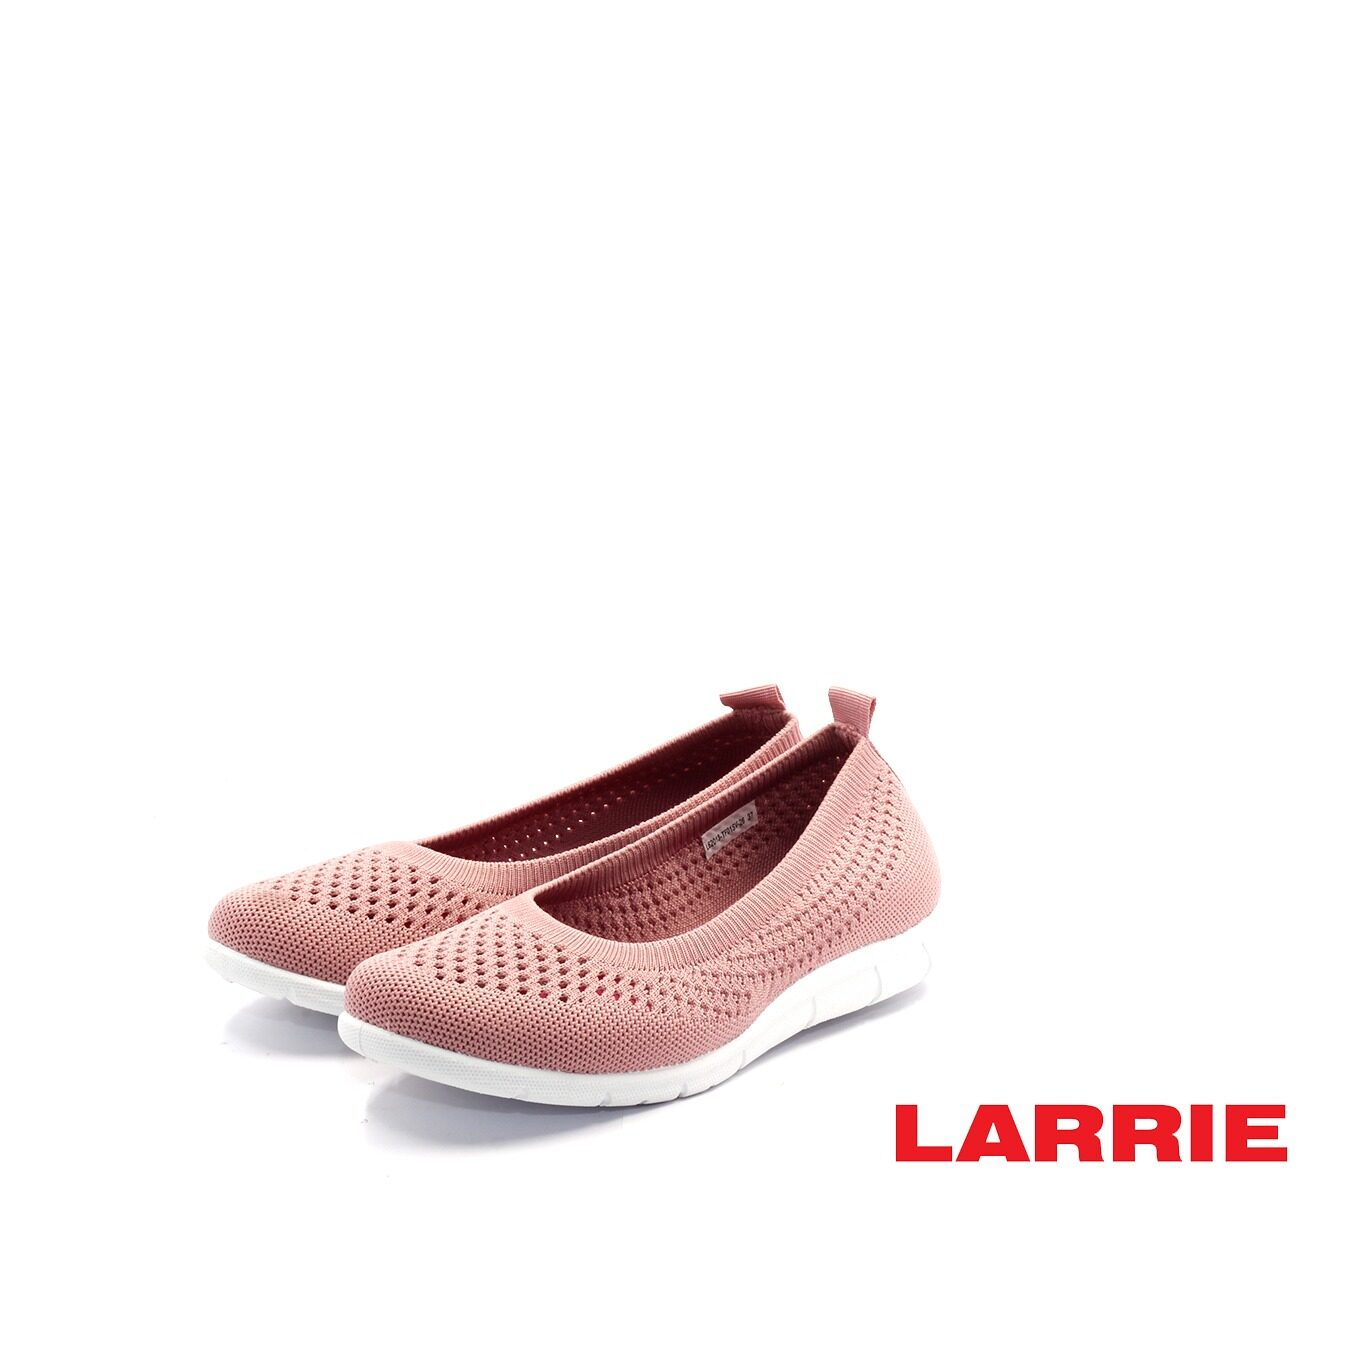 LARRIE Kasut Perempuan Stretchable Casual Comfort Sneakers Women  - L62013-TF01SV